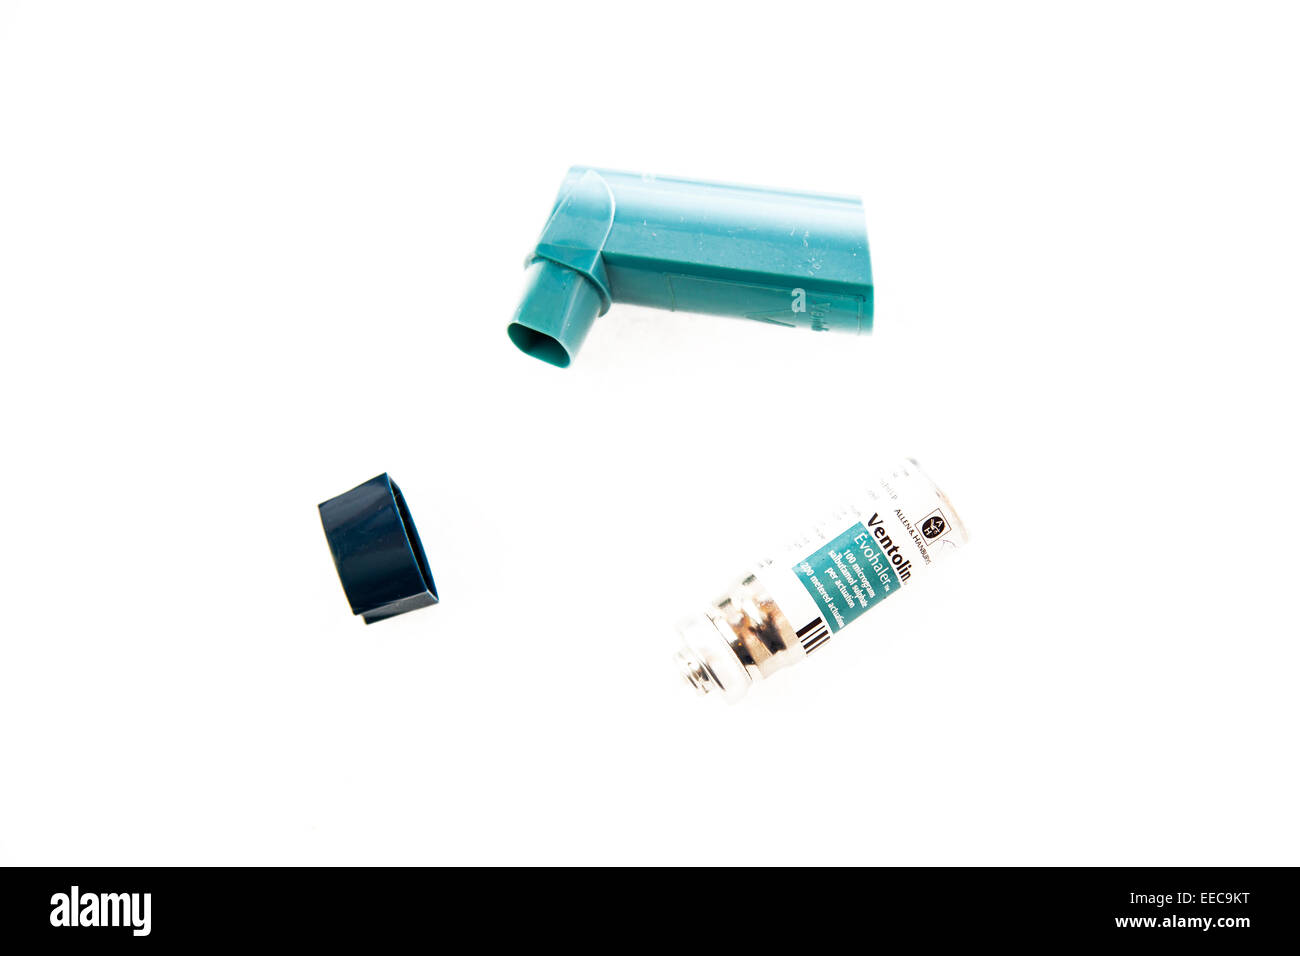 Ventolin inhaler evohaler dispenser asthma medicine tube  cut out copy space white background - Stock Image